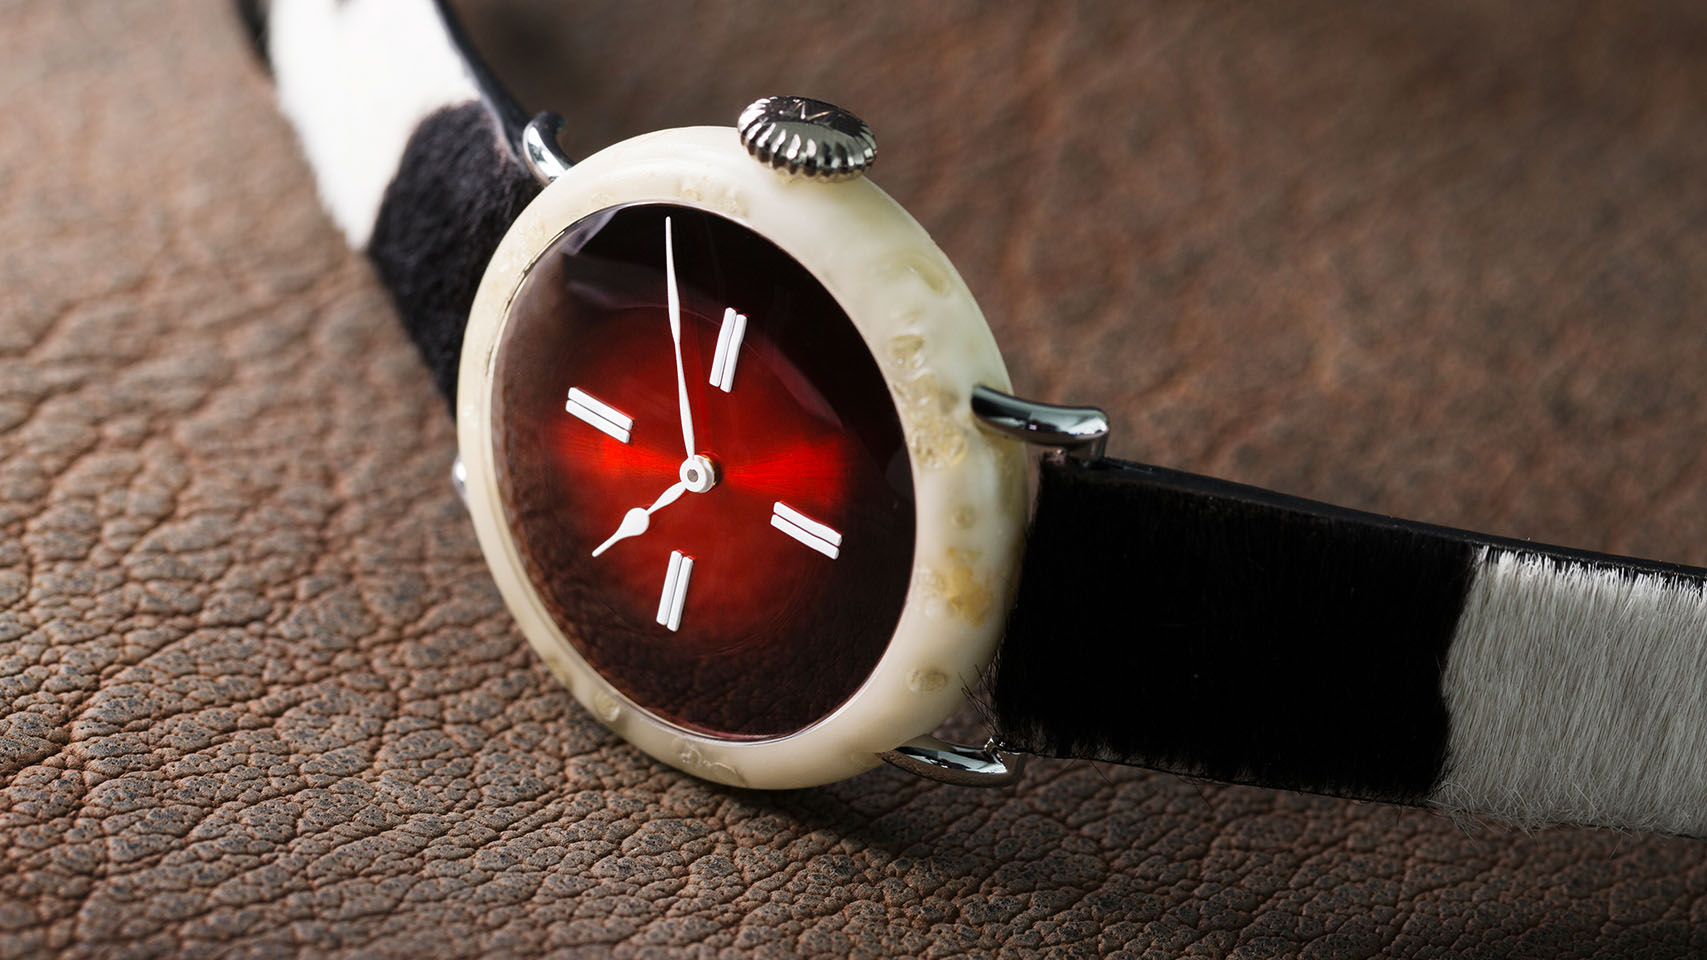 h-moser-cie-the-swiss-mad-watch-kapak-2.jpg